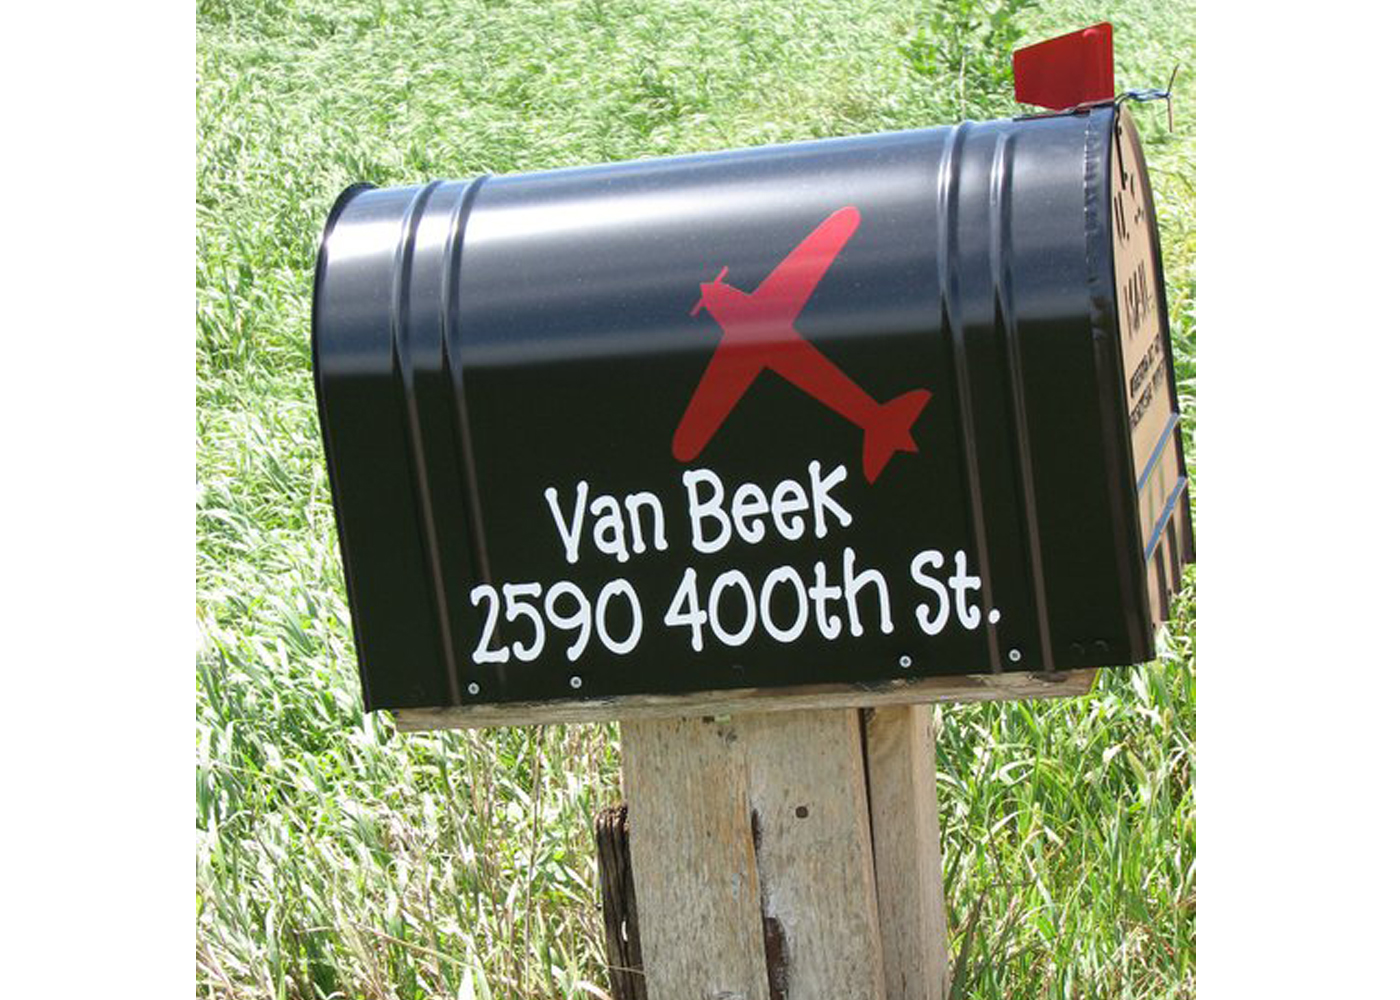 mailbox-jumbo-customized-with-airplane-viny-decals.jpg